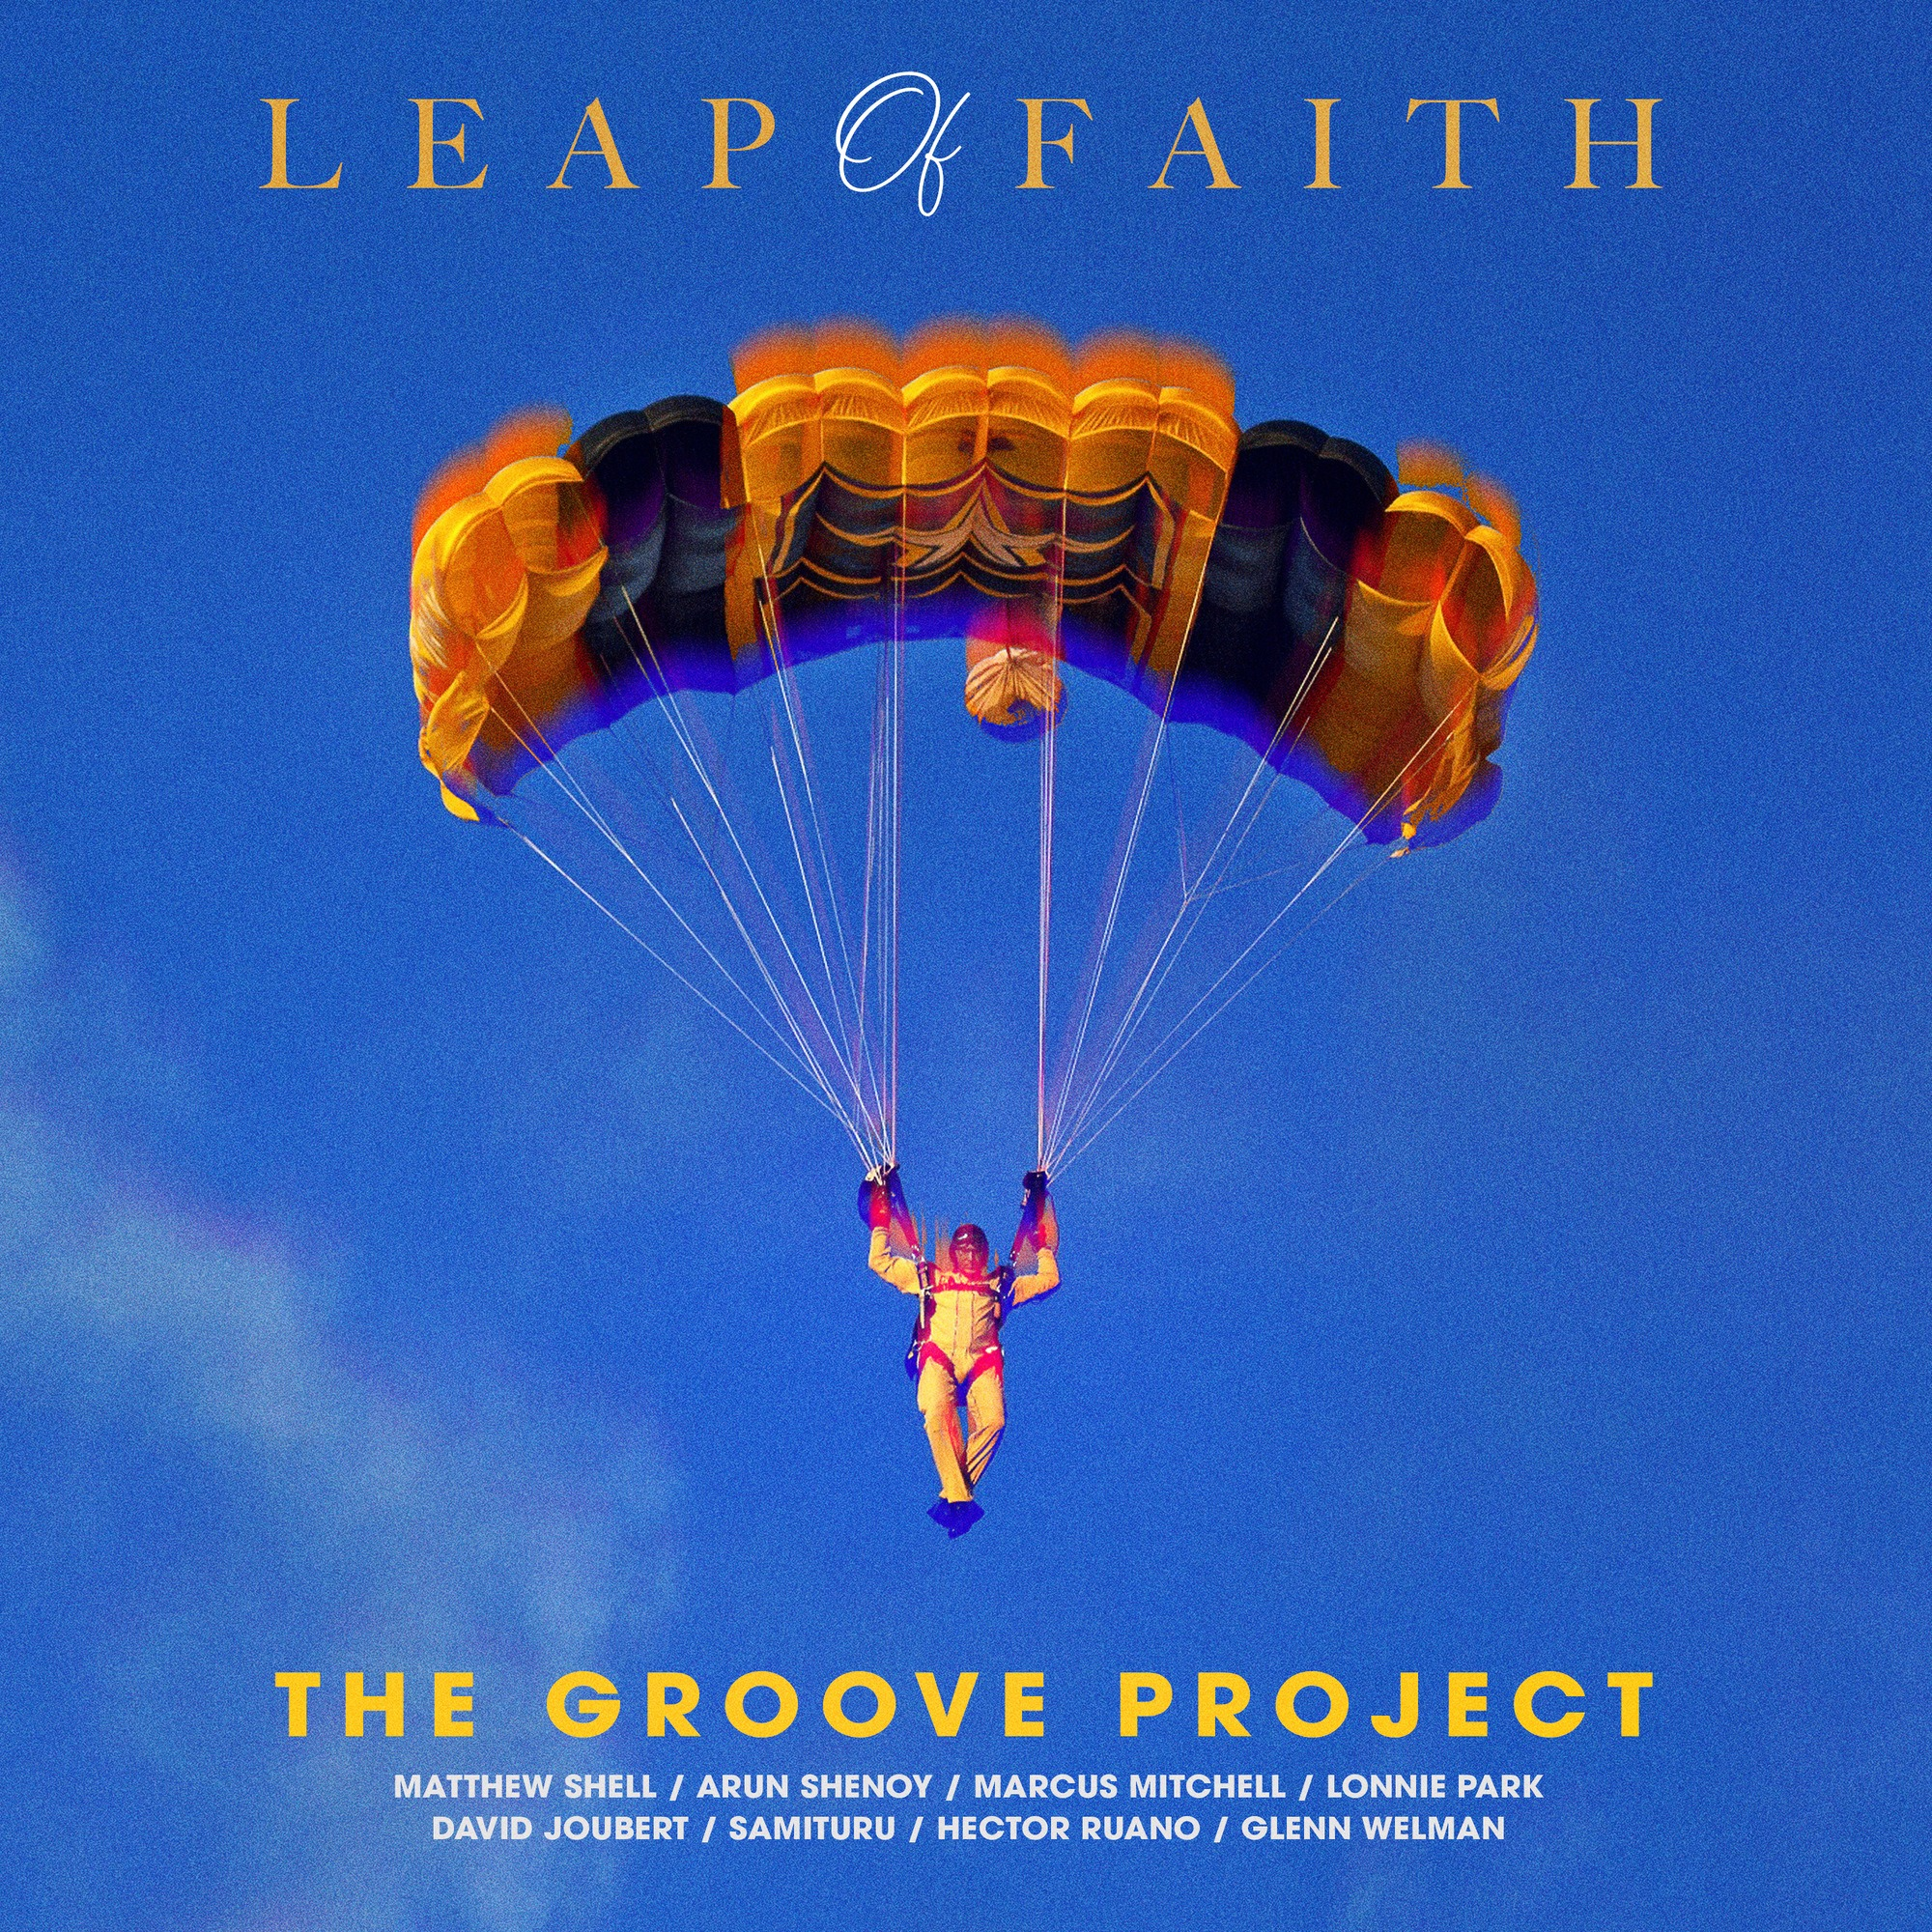 08. Leap of Faith